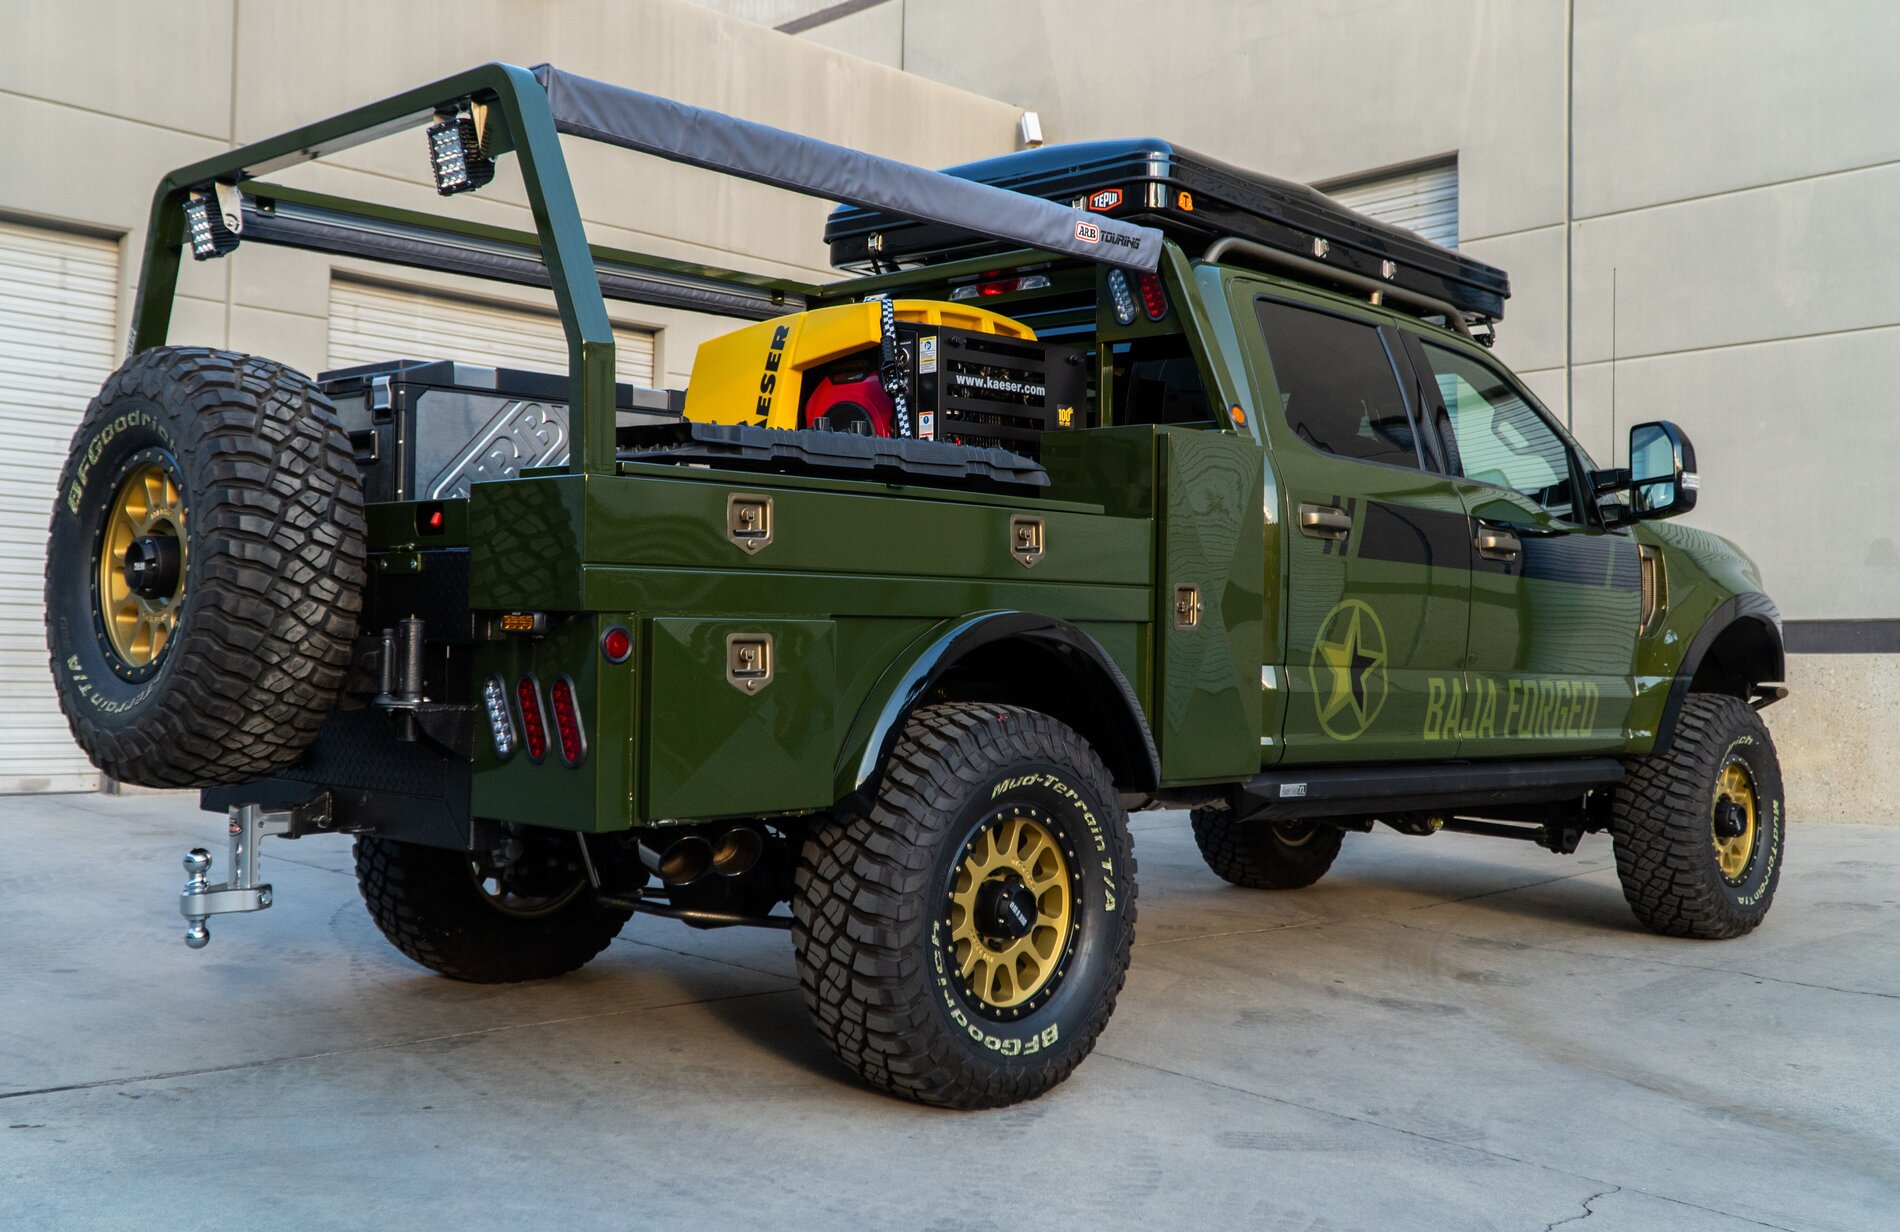 Baja Forged Ford F250 Overland Survival Truck Bronco6g 2021 Ford Bronco Forum News Blog Owners Community